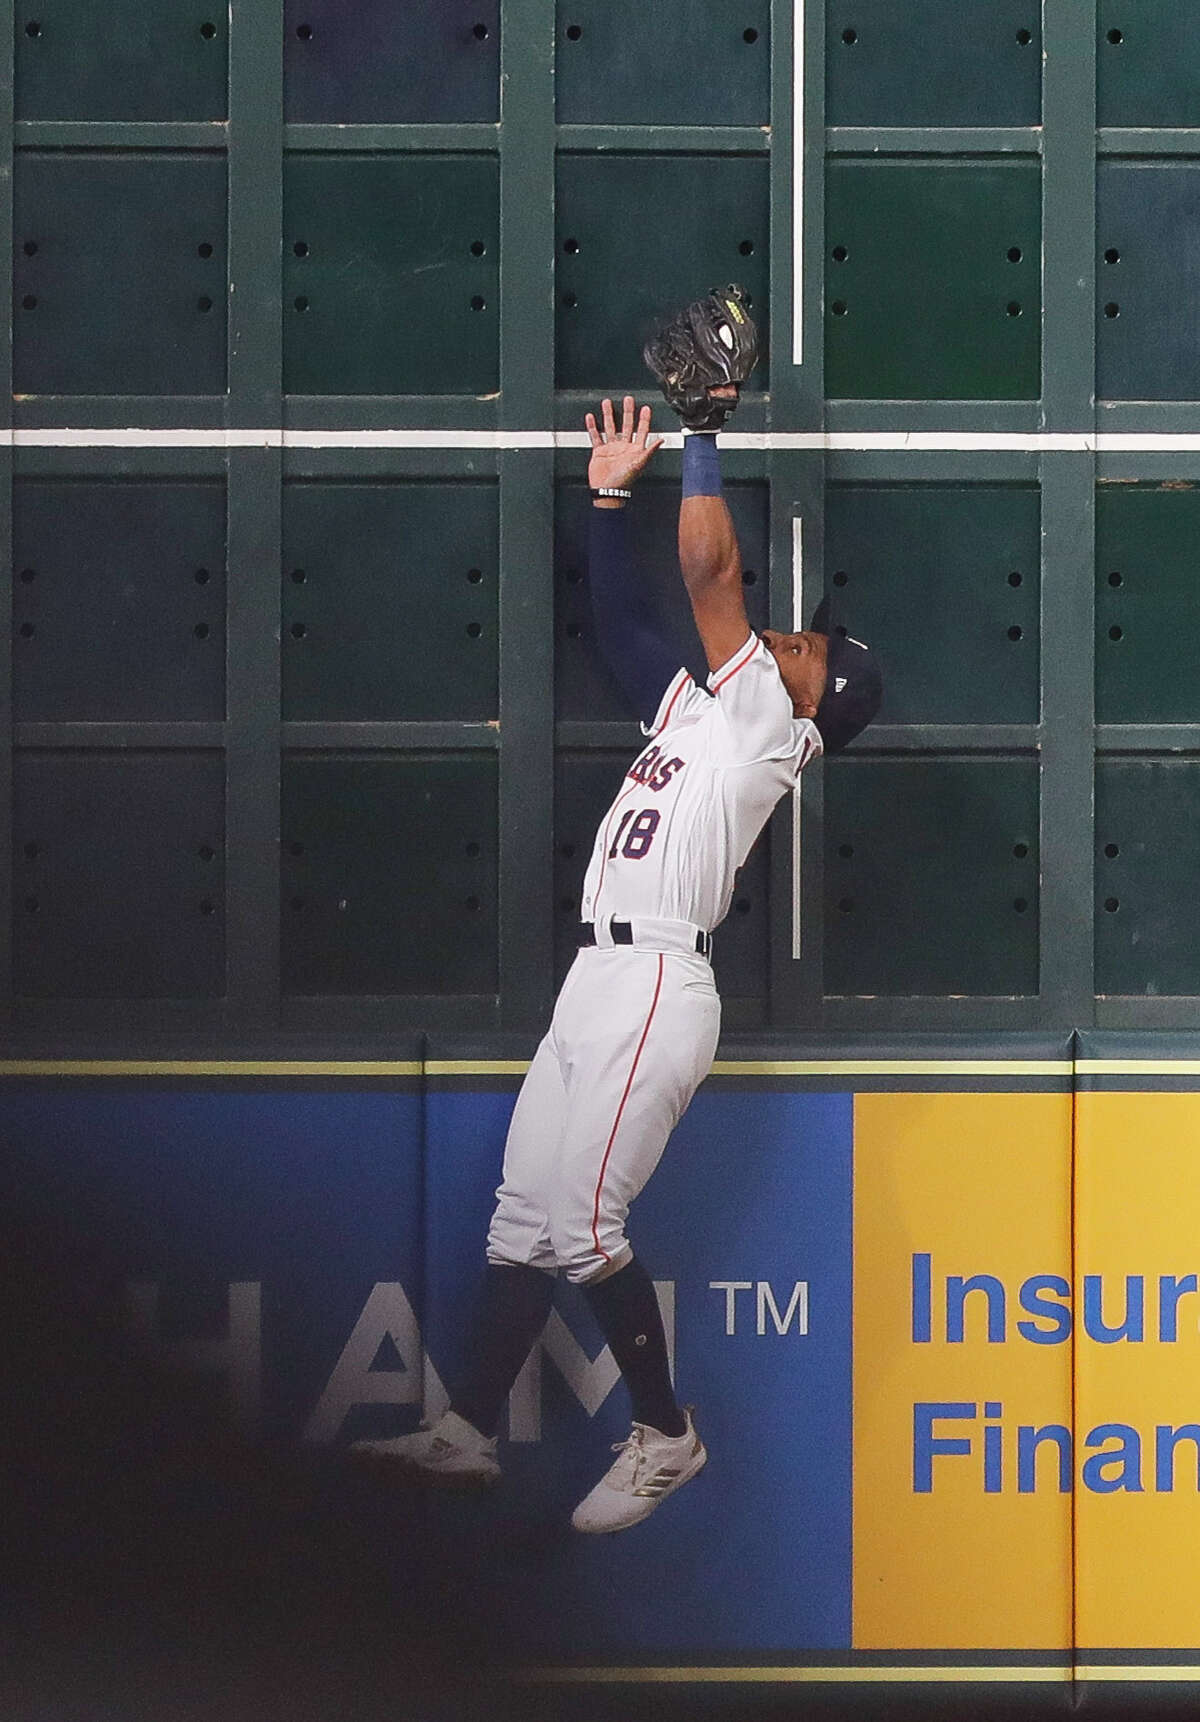 Houston Astros Tony Kemp (18) catches a fly ball from Boston Red Sox Steve Pearce (25) against the wall to end the top of the third inning of Game 3 of the American League Championship Series at Minute Maid Park on Tuesday, Oct. 16, 2018, in Houston.